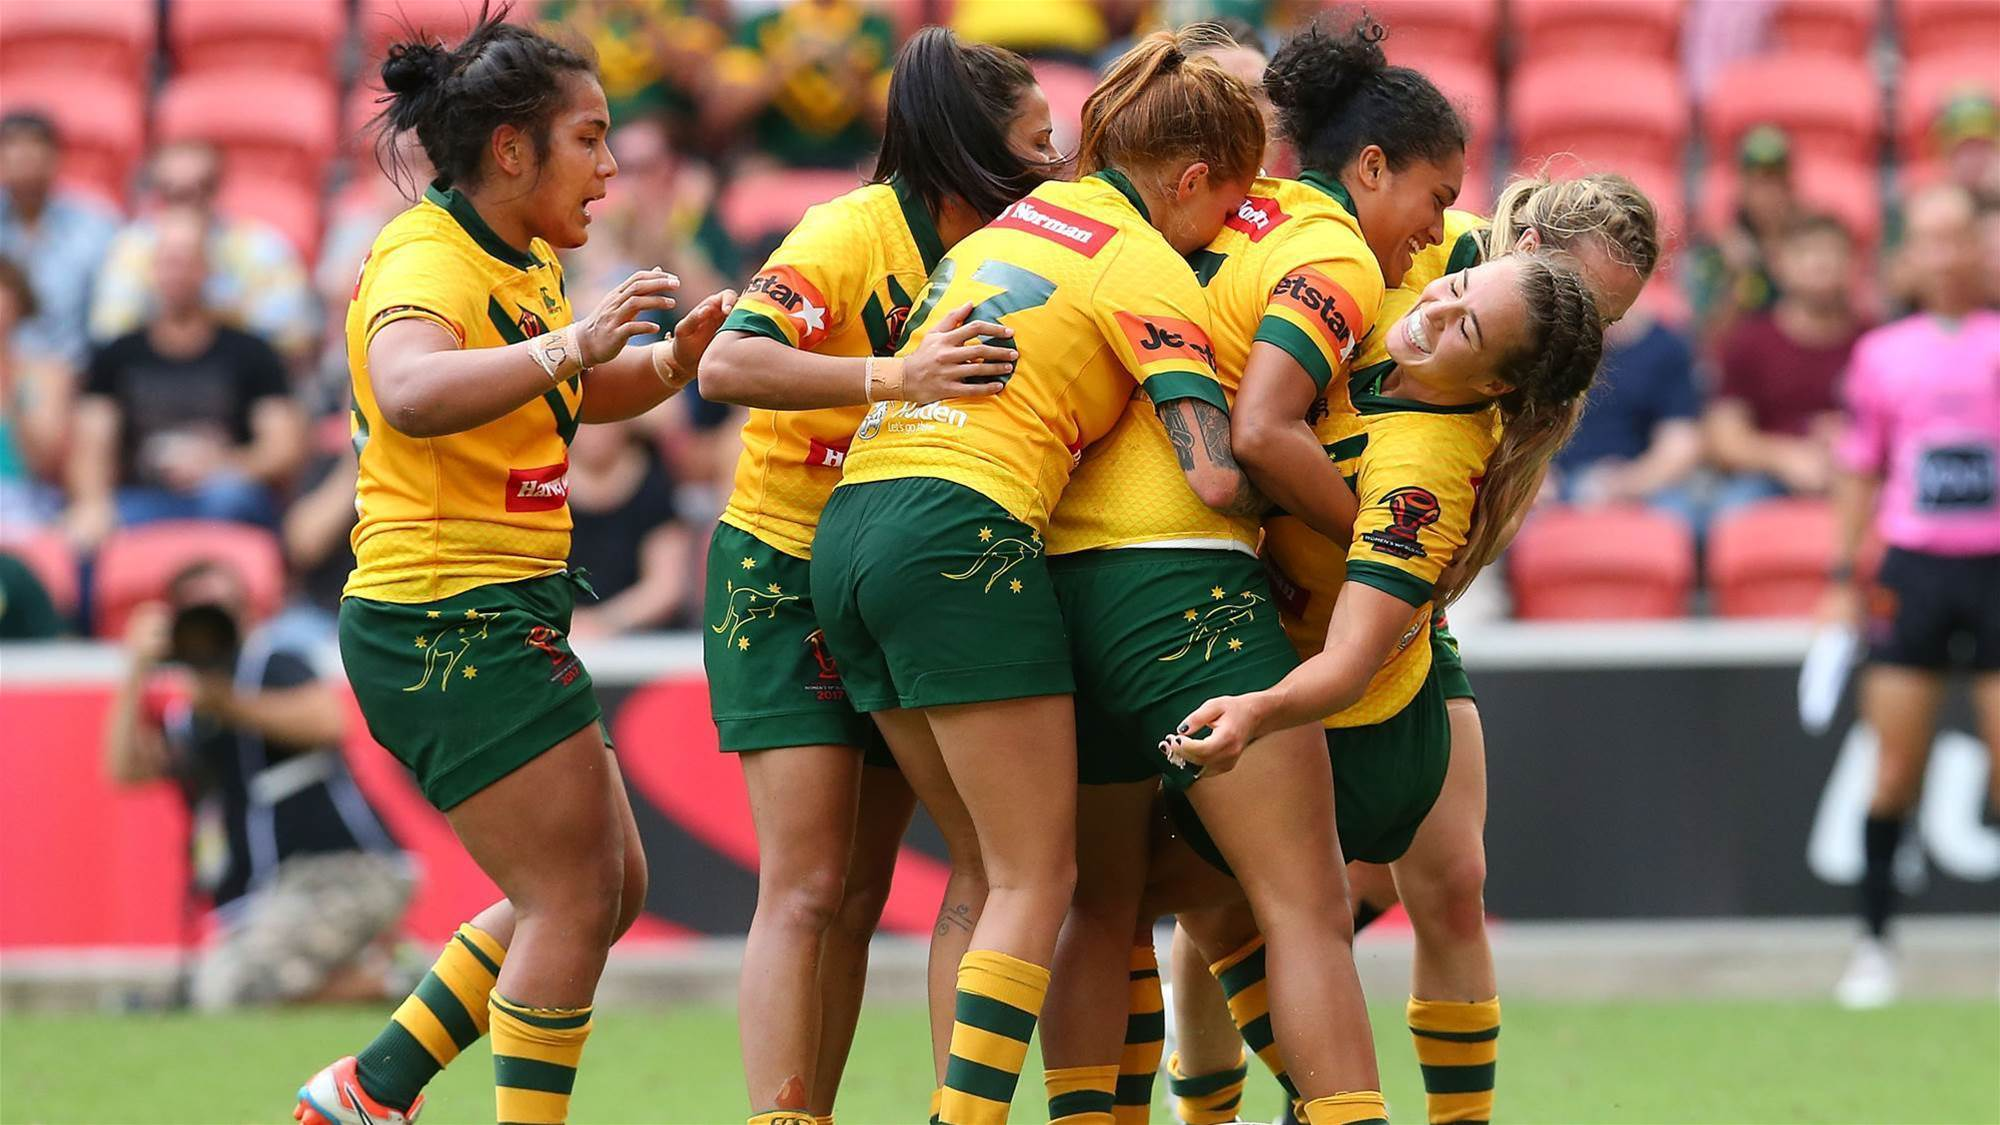 5 things to know about the women's NRL competition